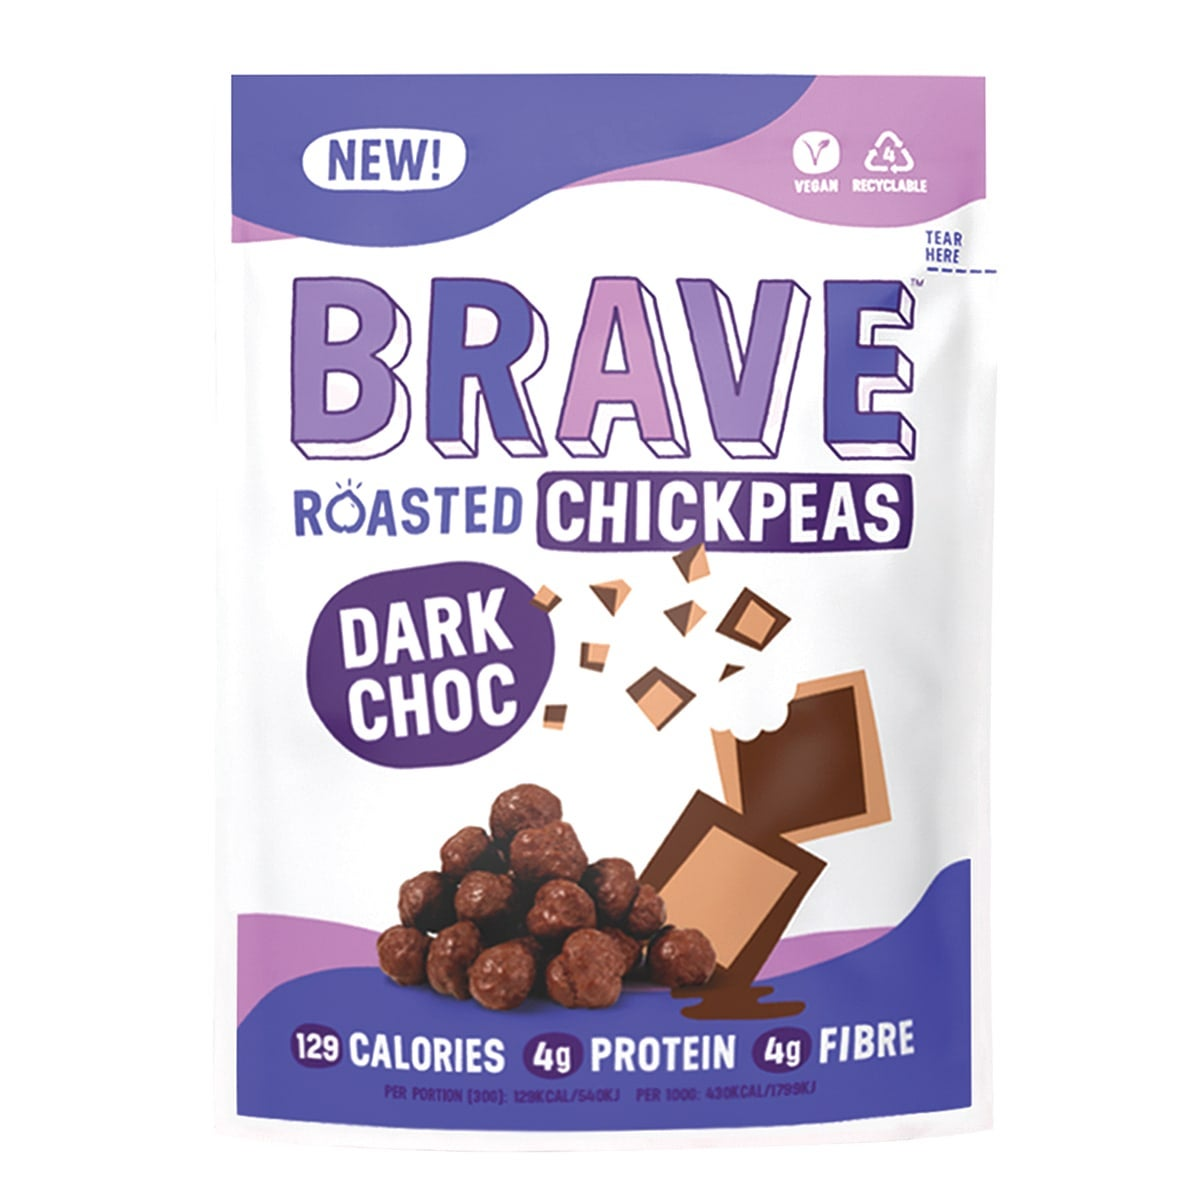 Brave Dark Chocolate Roasted Chickpeas, 30g, roasted then coated in chocoloate, full of protein and fibre, 5 SmartPoints per bag, gluten free, suitable for vegans